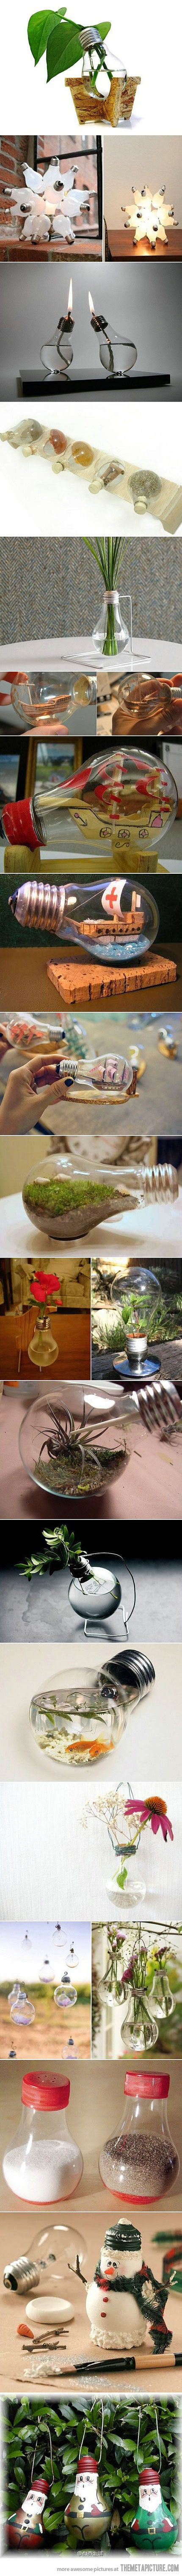 1000 images about lightbulb things on pinterest lightbulbs bulbs - Best 25 Light Bulb Terrarium Ideas On Pinterest Light Bulb Crafts Light Bulb And Simple Crafts